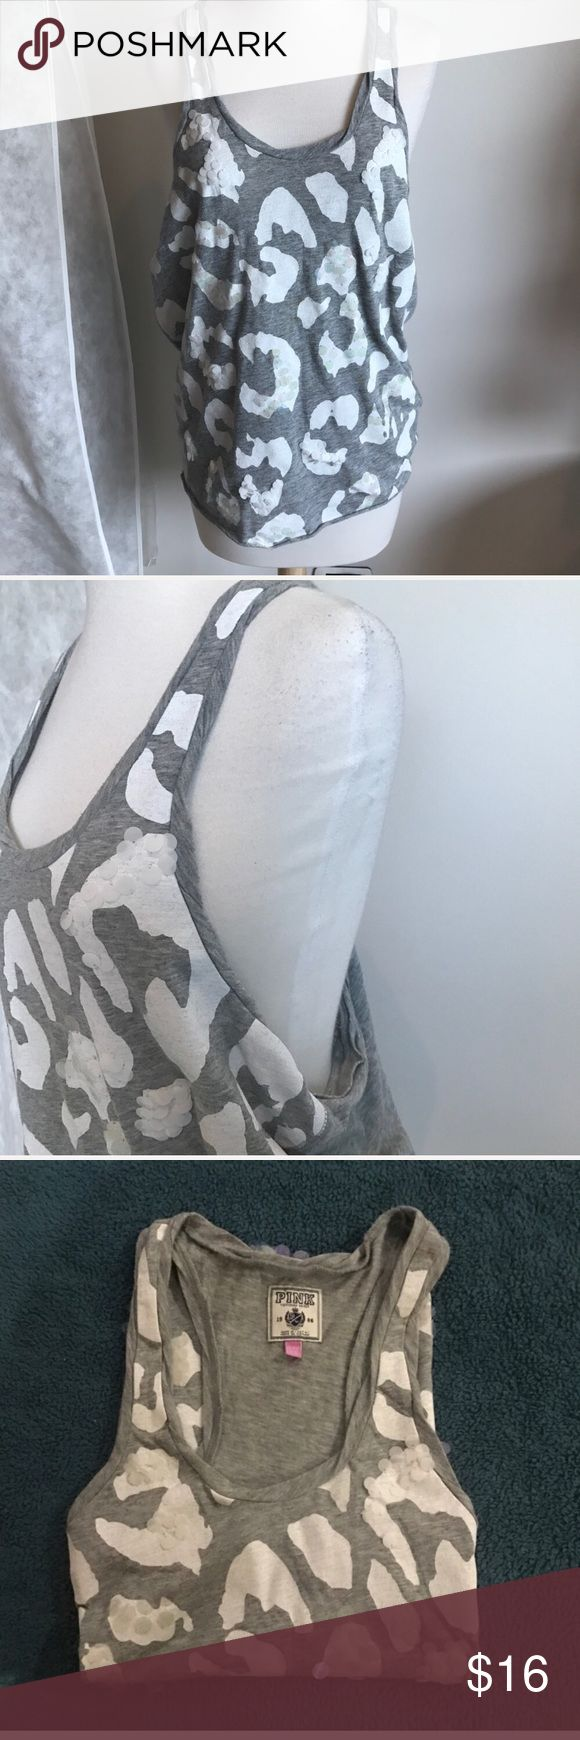 White and Gray Leopard Top Light gray oversized wife beater with eye catching oversized leopard spots and big round sequins 😍 this top is pretty big so it will fit a size small👌🏽 so comfortable and definitely pops❤️ PINK Victoria's Secret Tops